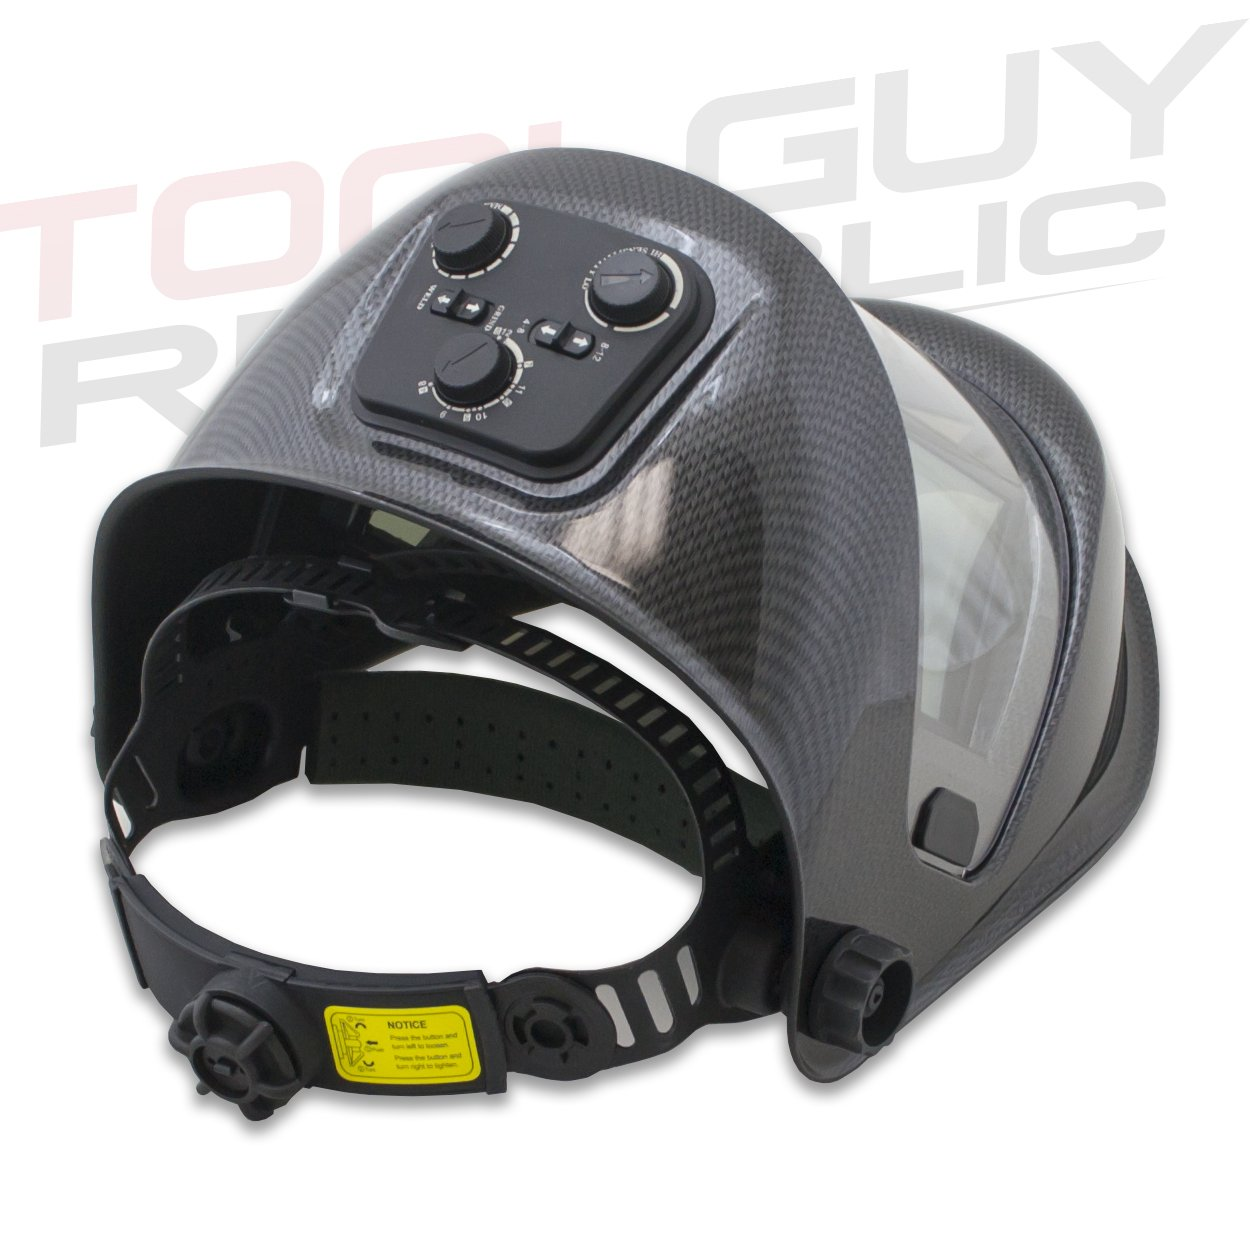 TGR Panoramic 180 View Solar Powered Auto Darkening Welding Helmet - True Color (Carbon Fiber) by Tool Guy Republic (Image #3)